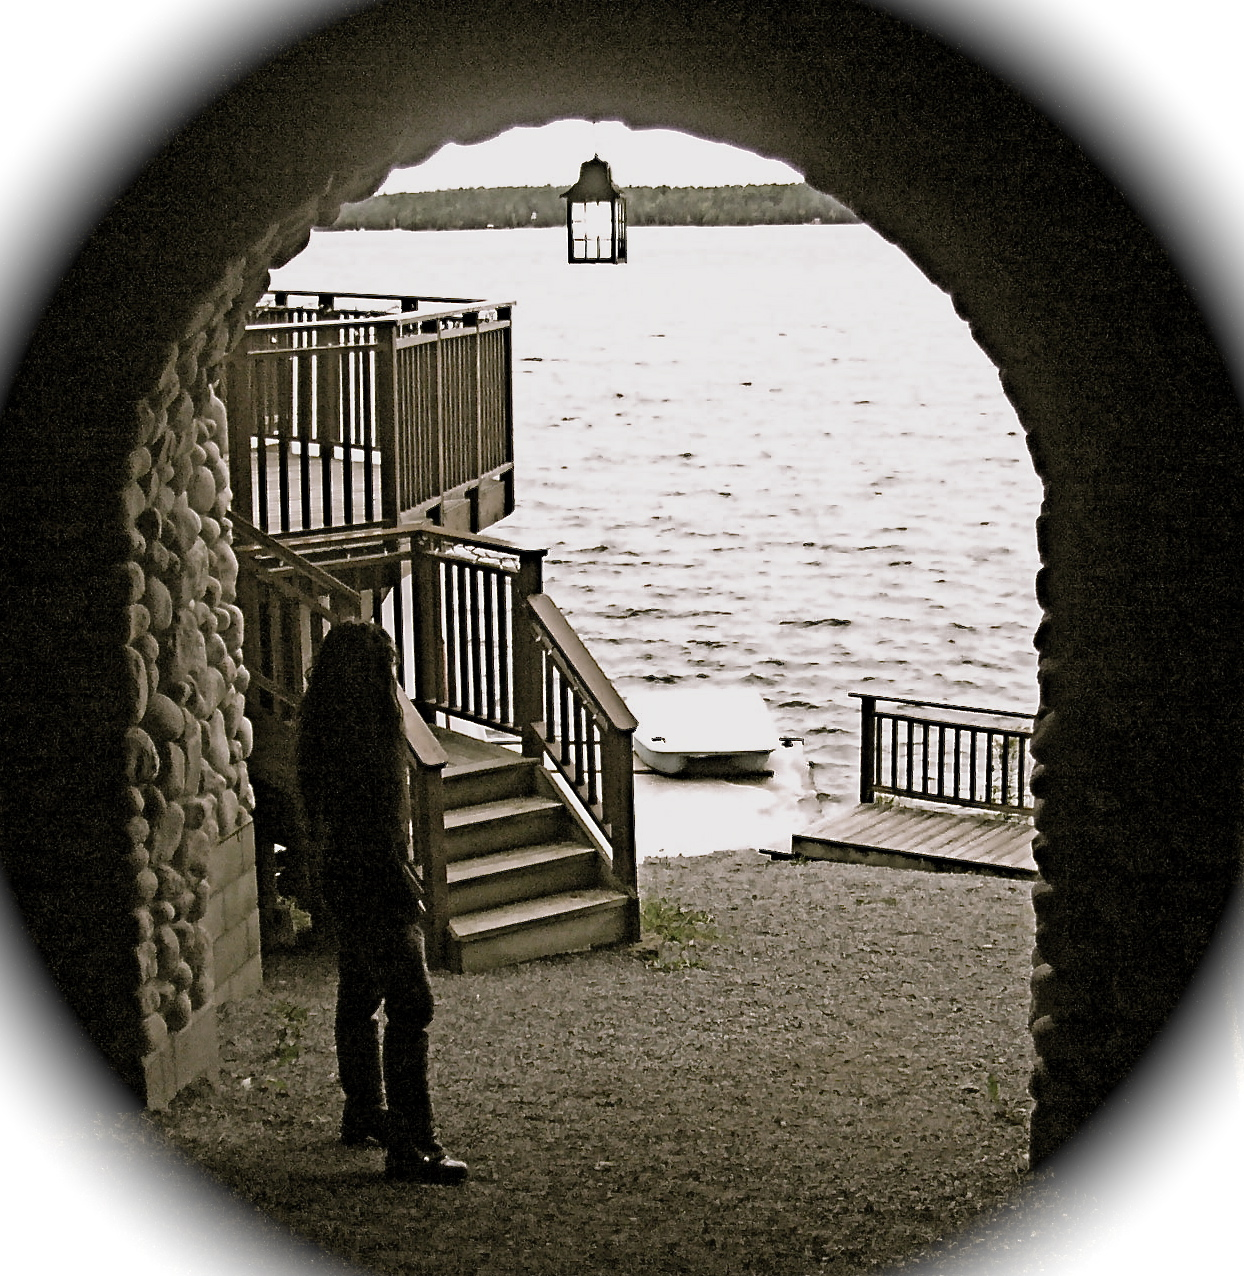 woman stands looking out at the water from a stone archway